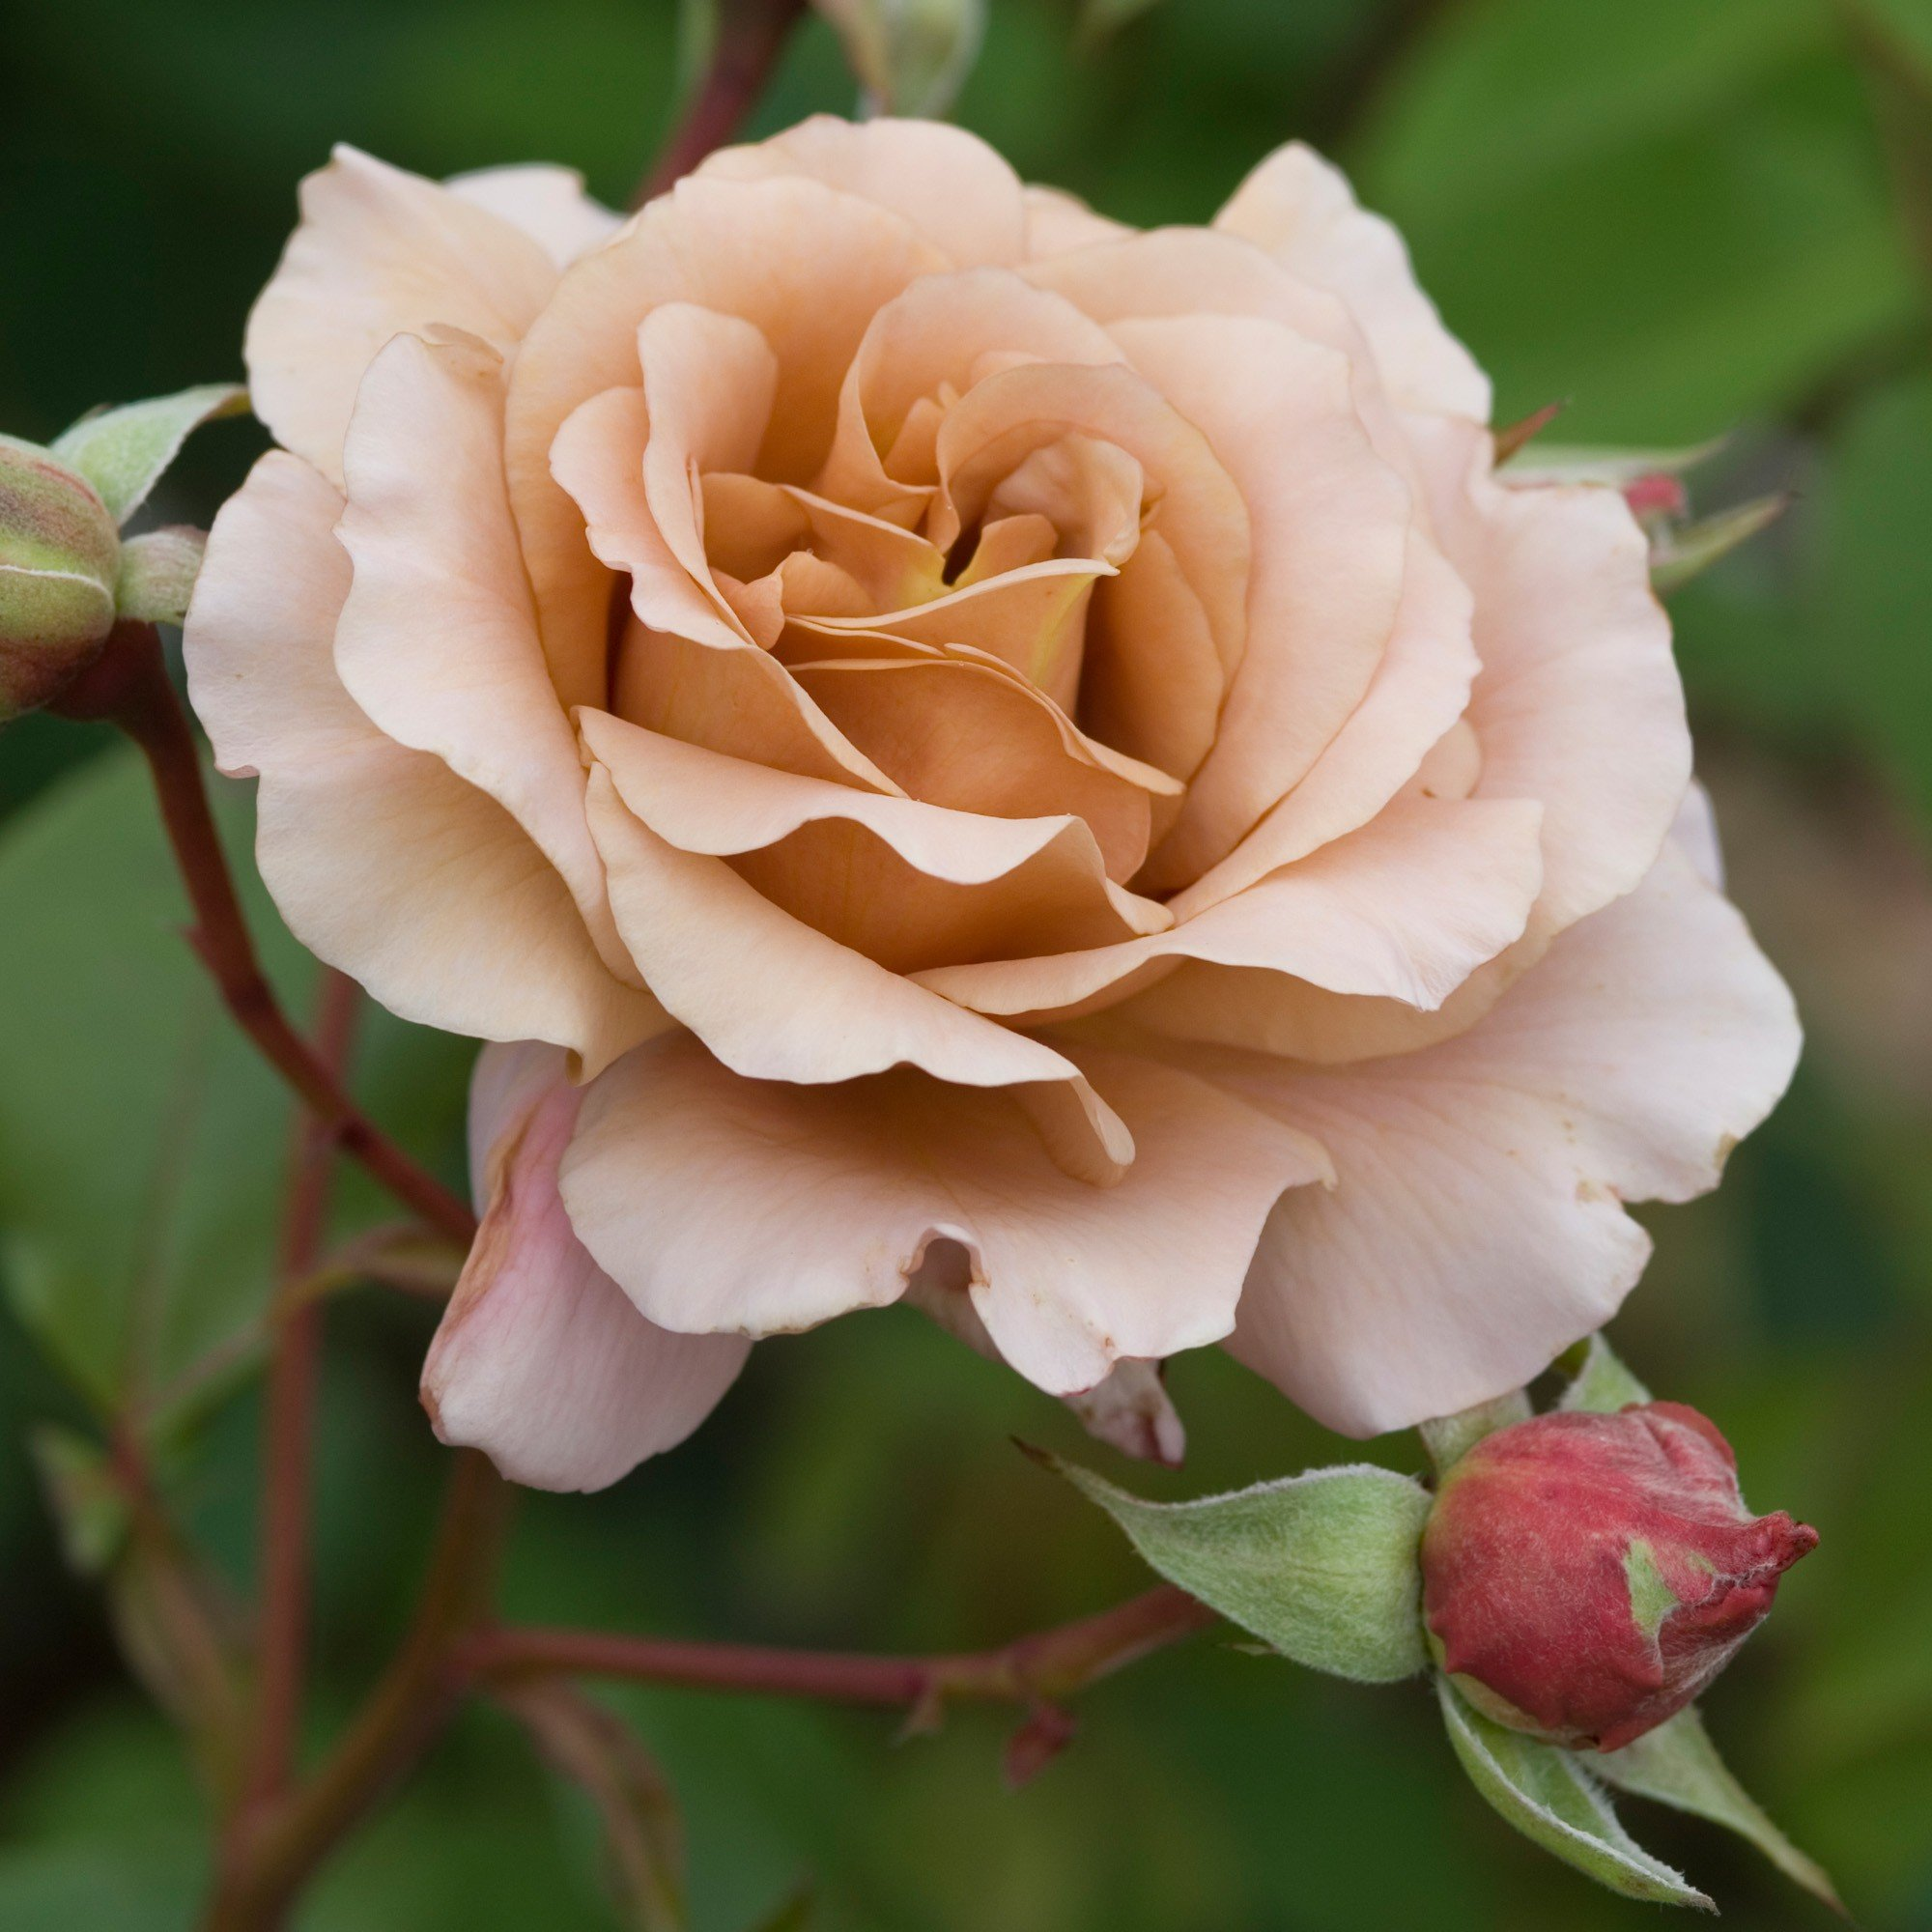 Saturday flower delivery same day flower delivery by httpsdavidaustinroses mediacatalogproductcache1image9df78eab33525d08d6e5fb8d27136e95jujuliasrose11g izmirmasajfo